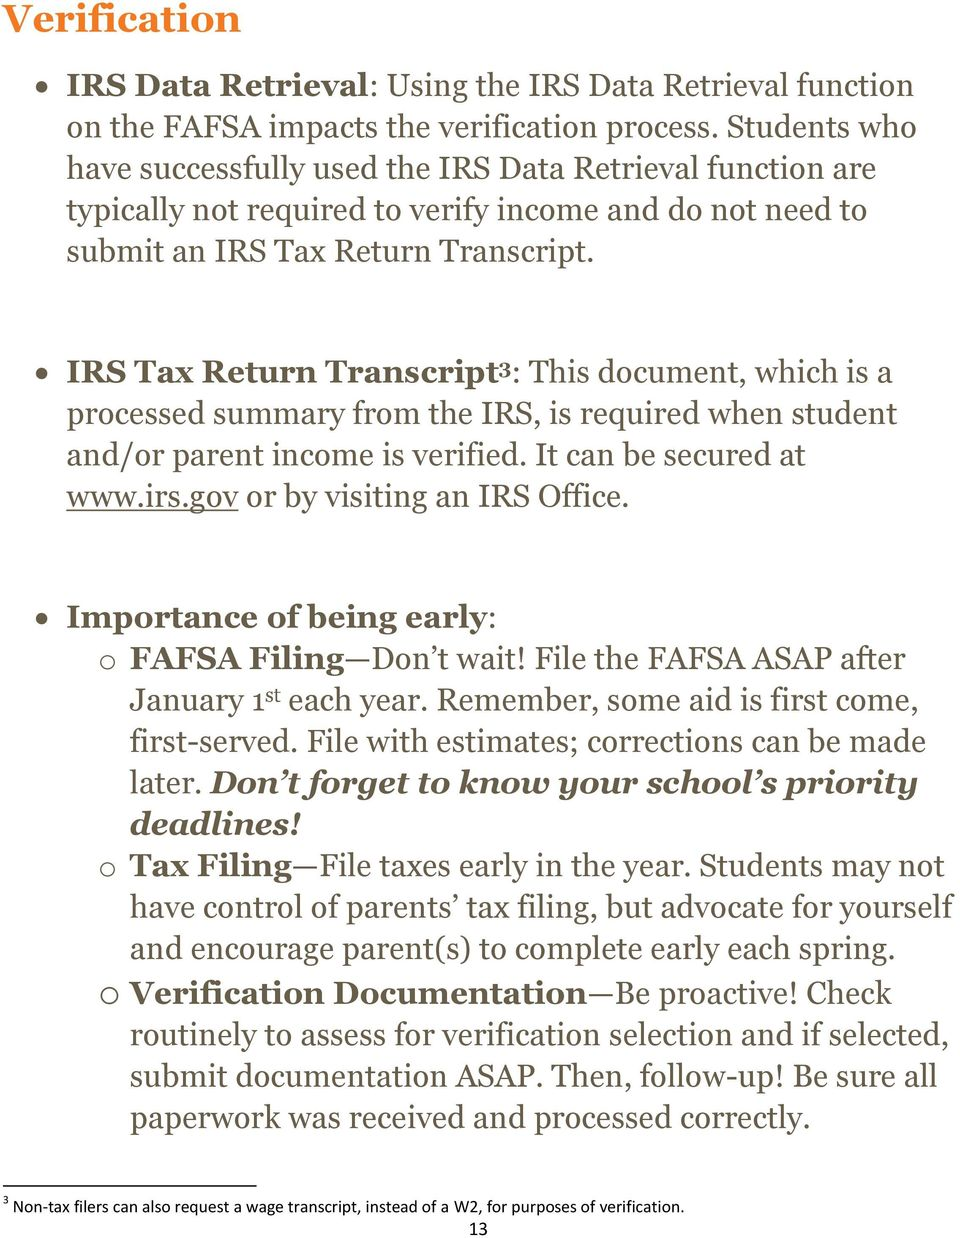 IRS Tax Return Transcript 3 : This document, which is a processed summary from the IRS, is required when student and/or parent income is verified. It can be secured at www.irs.